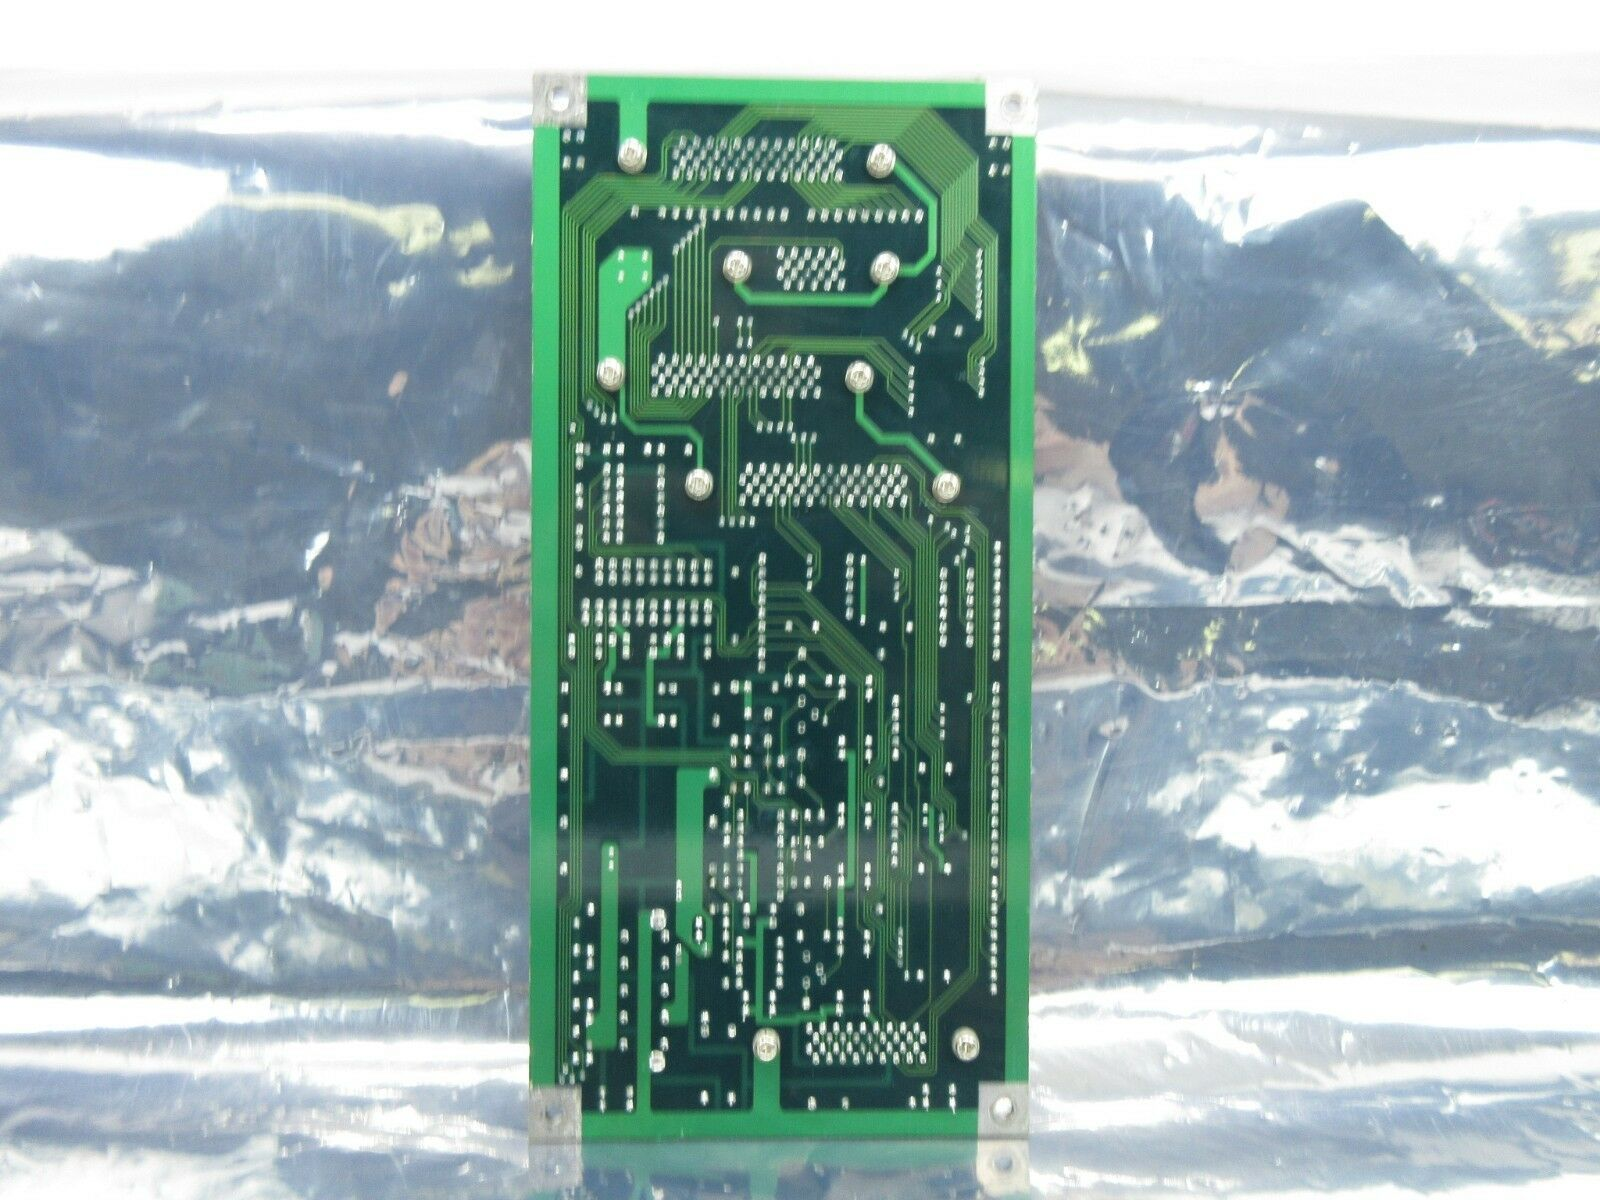 Nikon 4S007-760-1 Interface Control Board PCB STG81 NSR-S202A Used Working